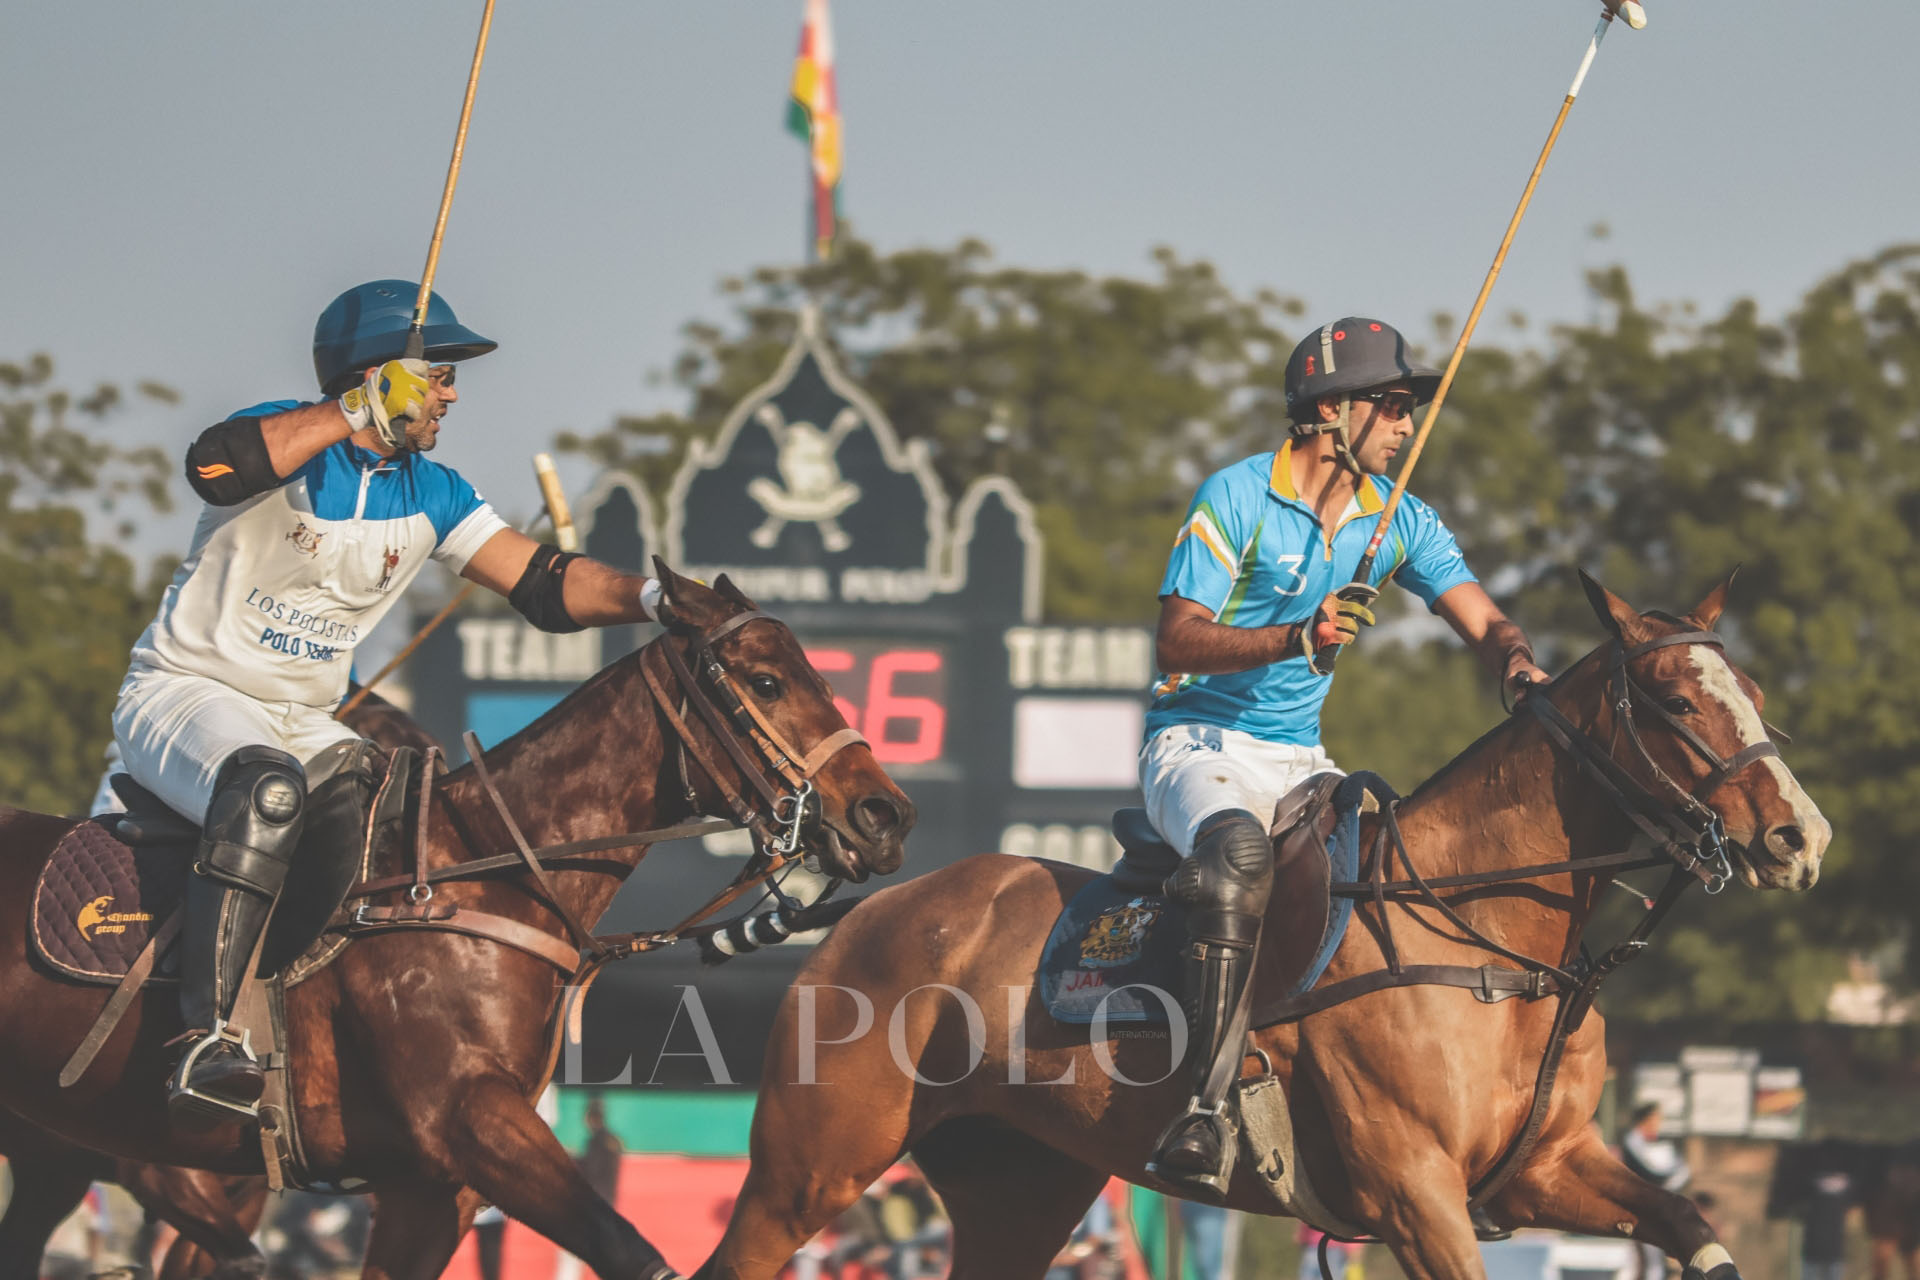 SAHARA WARRIORS OVERCAME LOS POLISTAS AT THE RAJPUTANA & CENTRAL INDIA CUP (10 Goals), 21ST JODHPUR POLO SEASON, 2020!